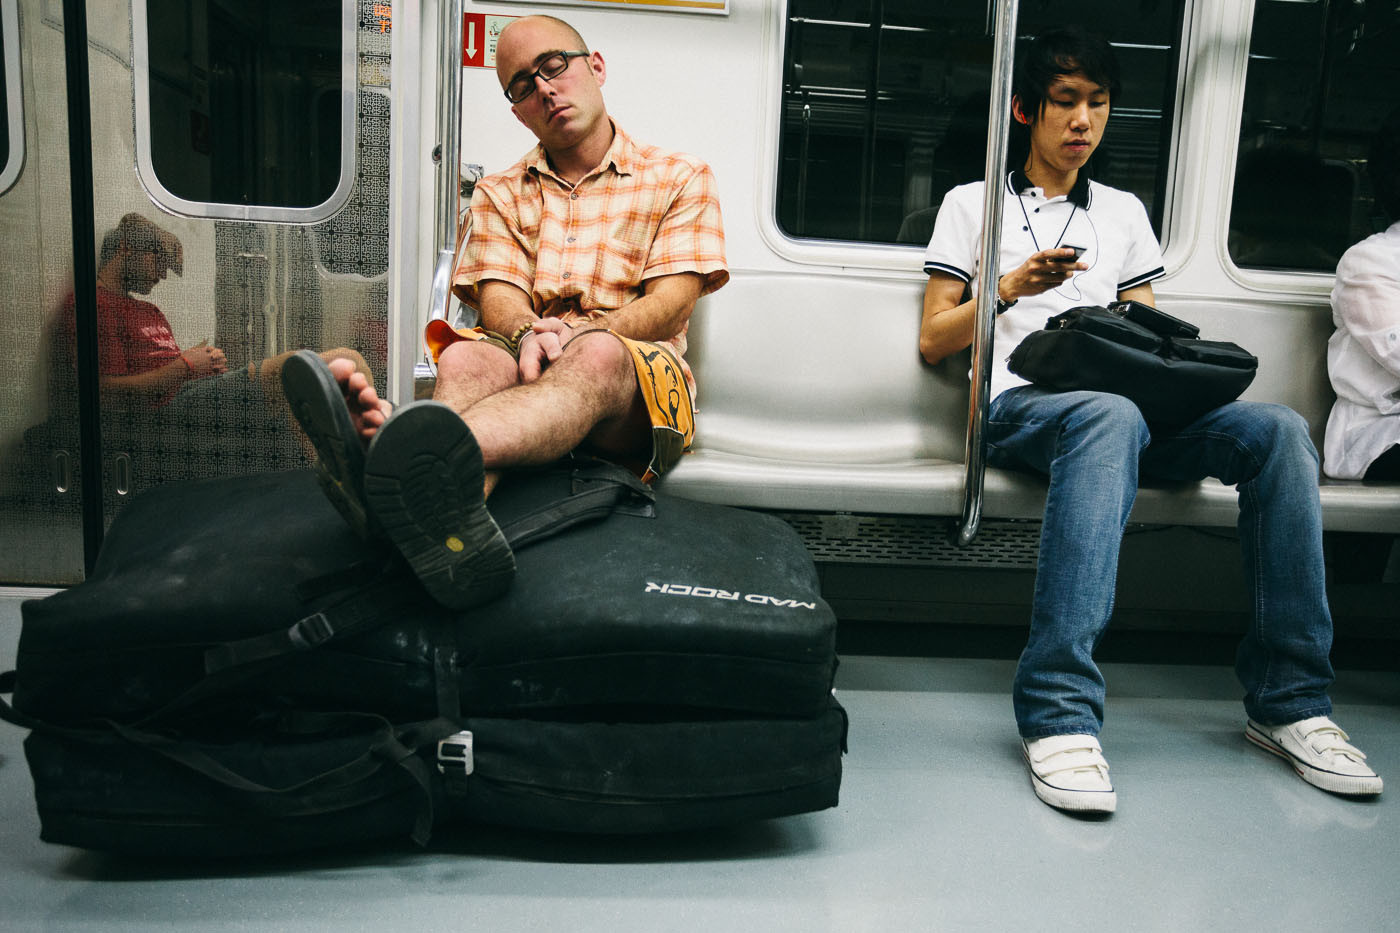 Dave McAllister rides the subway in Seoul, South Korea